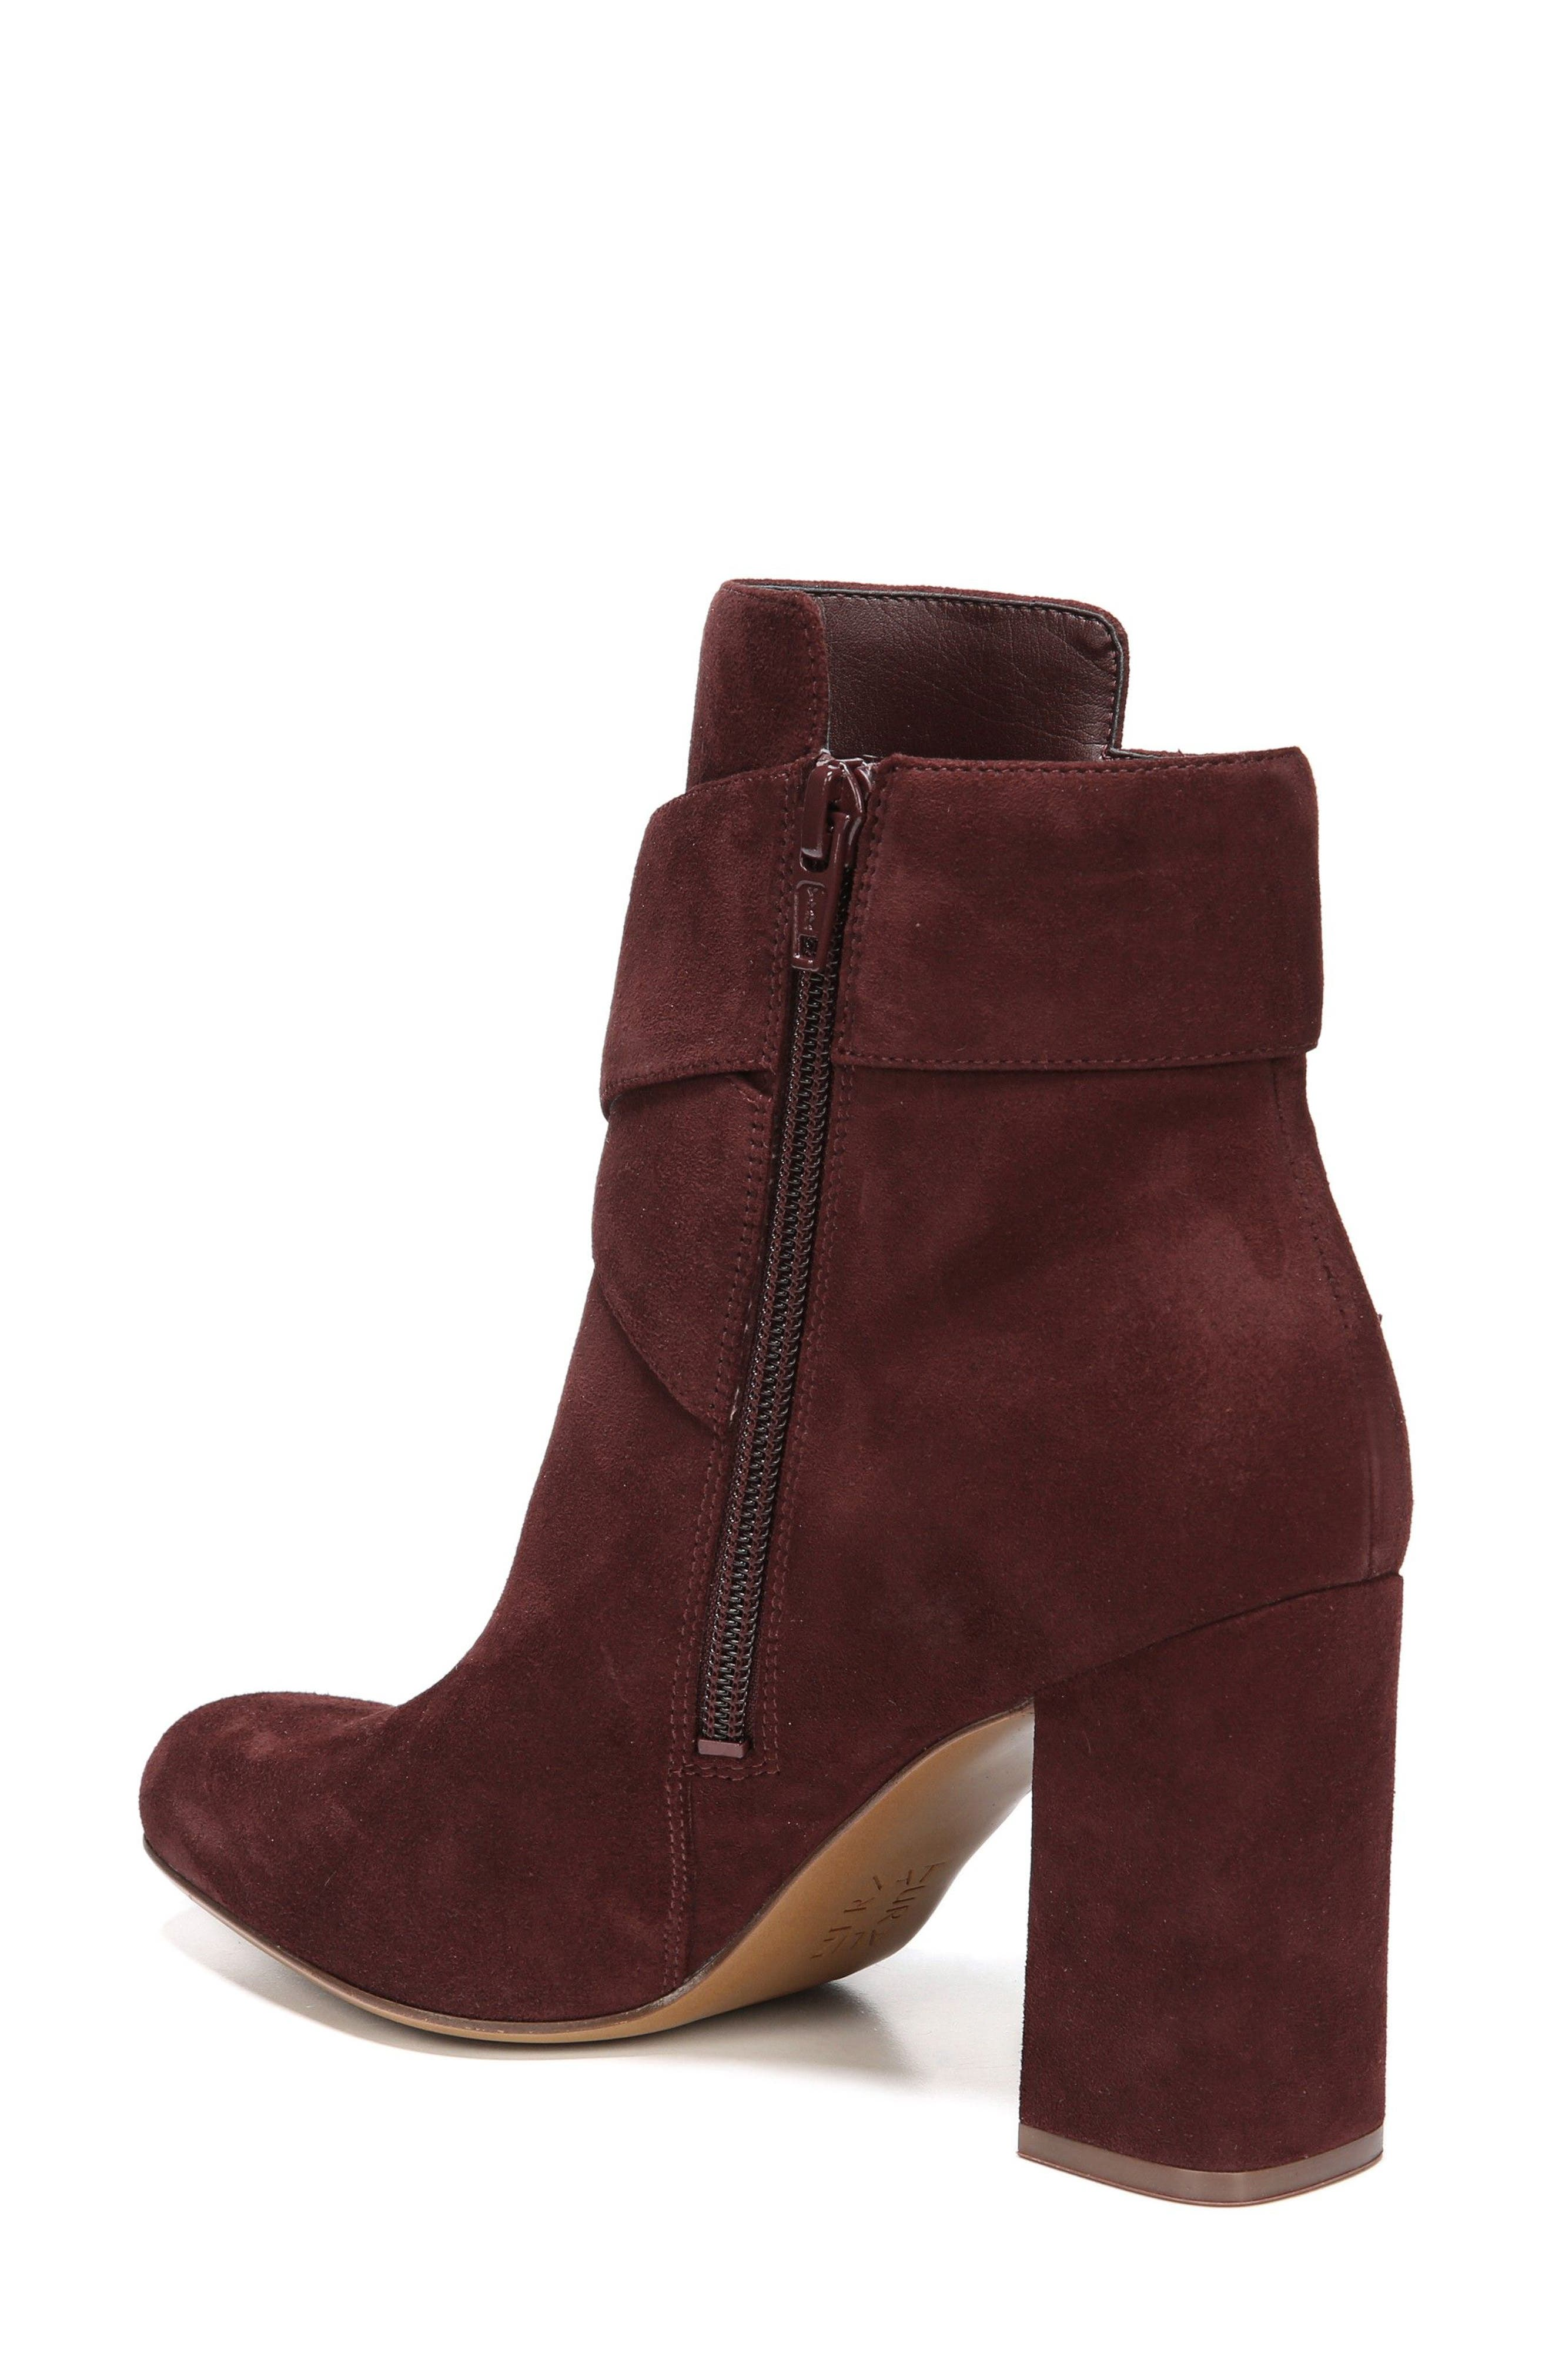 Nautralizer Rae Bootie,                             Alternate thumbnail 2, color,                             Bordo Leather